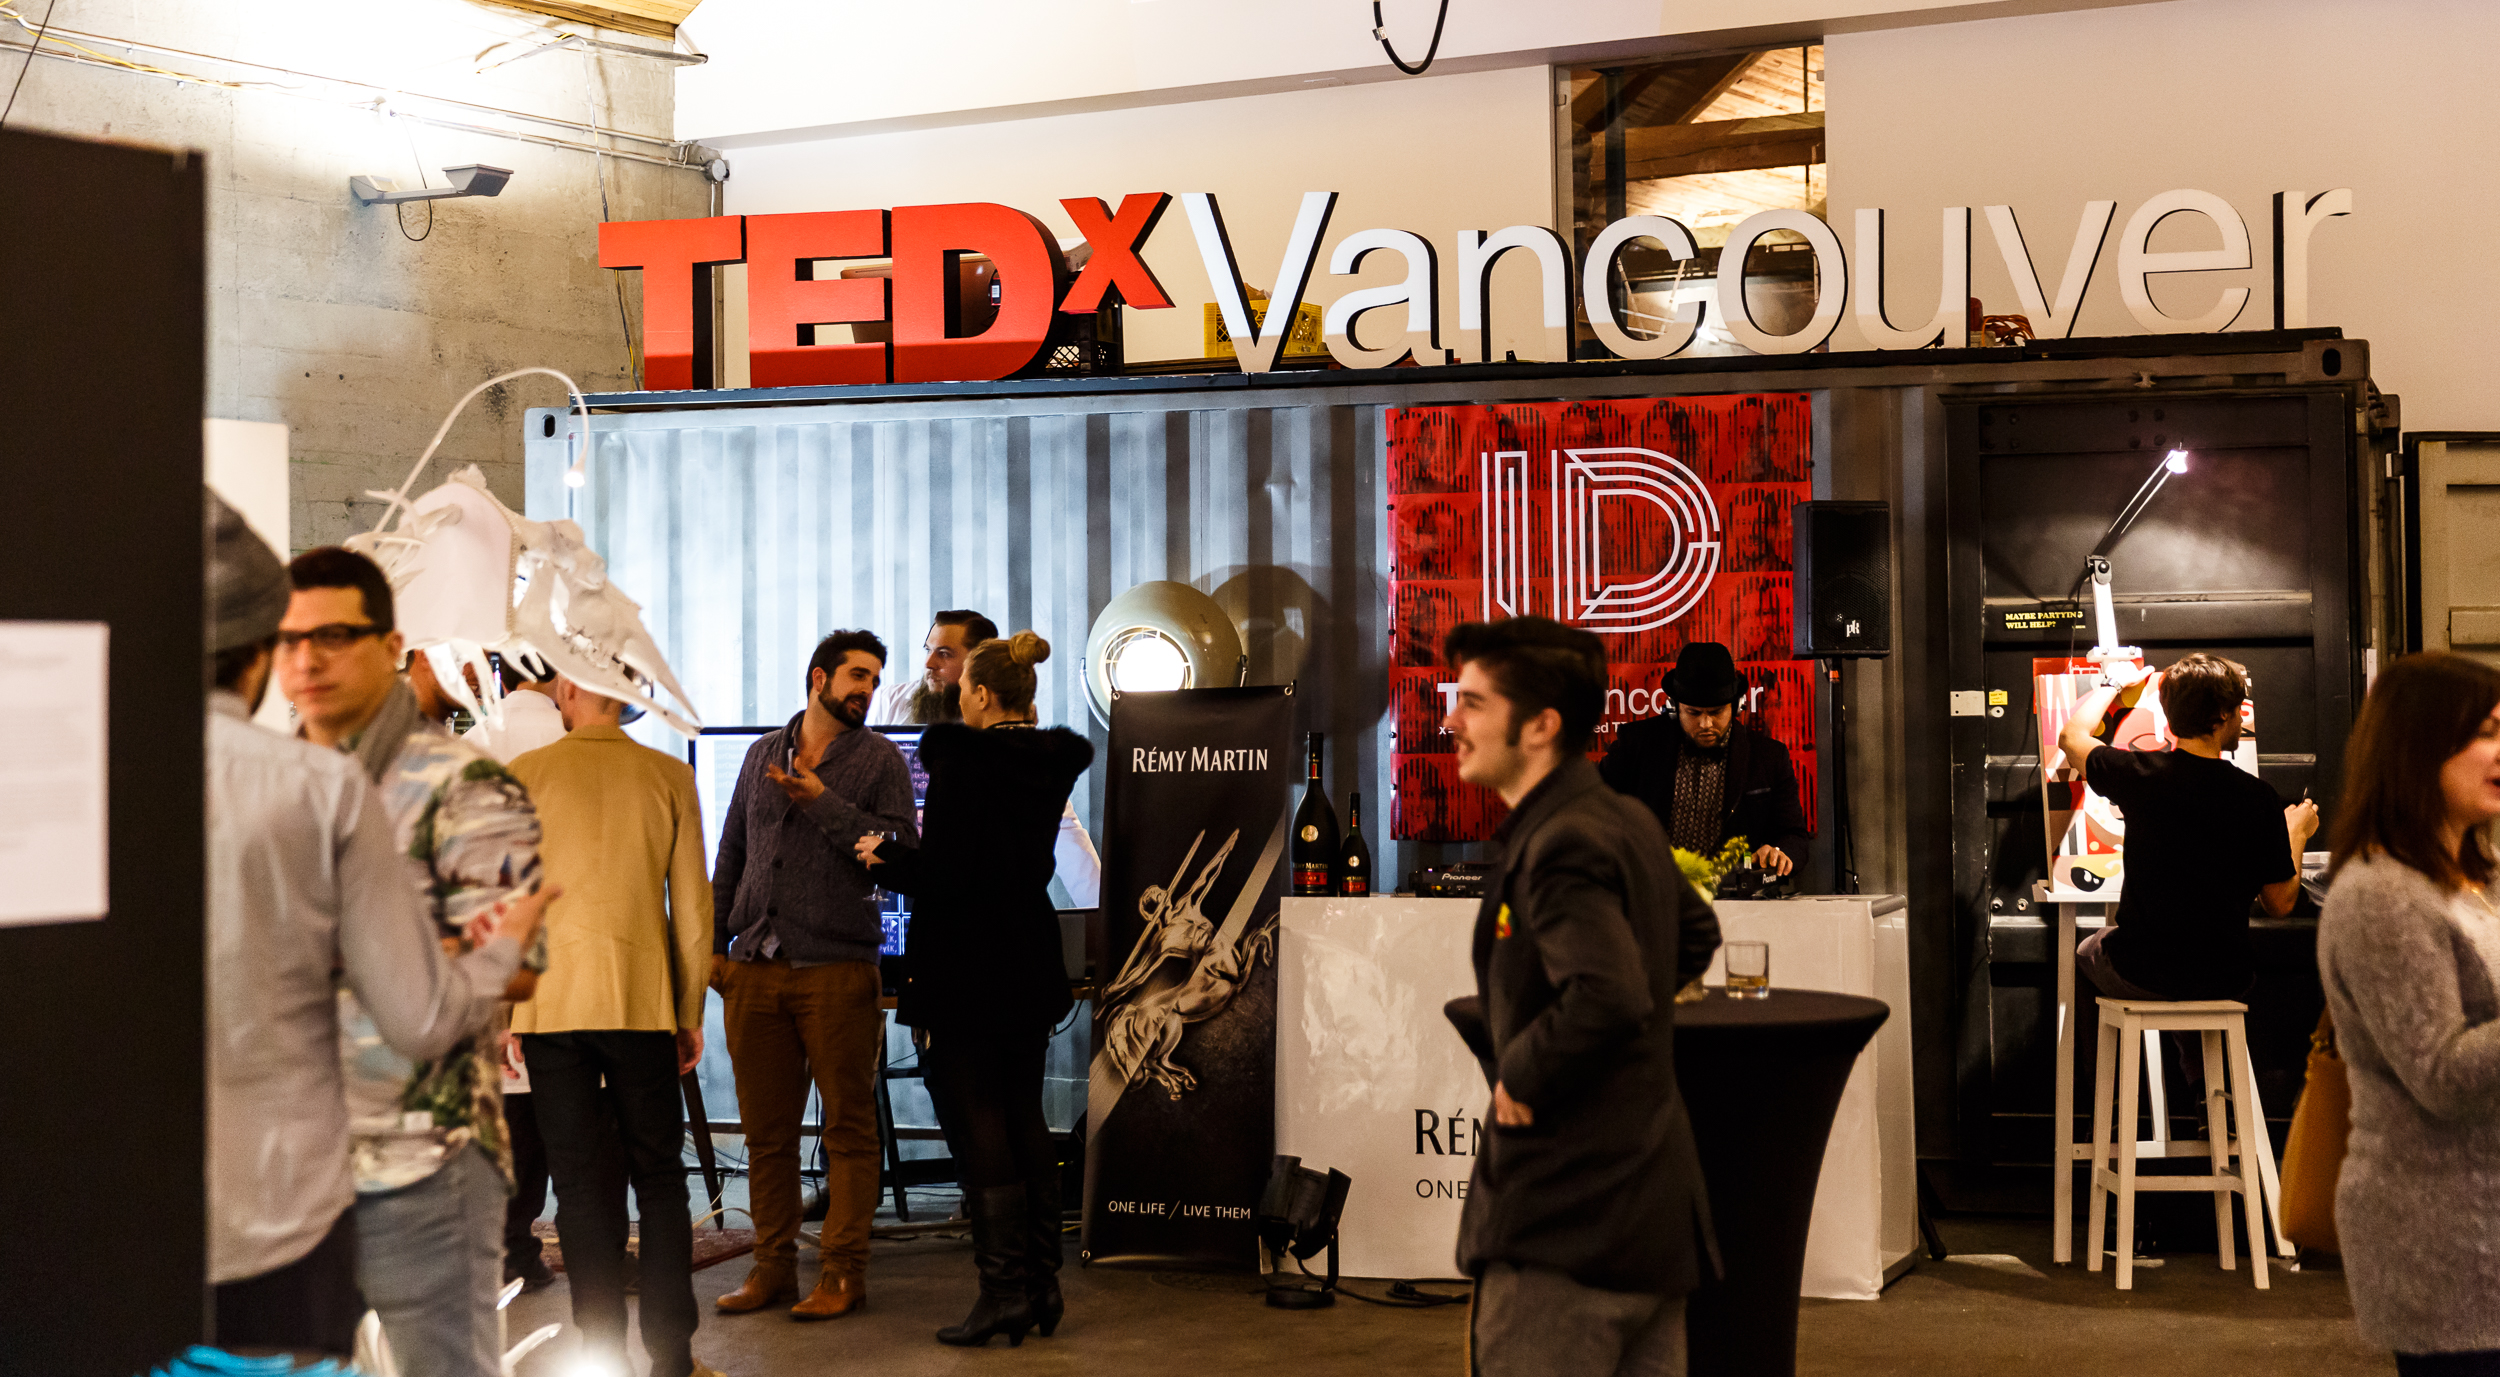 TED-Art-Vancouver-image1.jpg